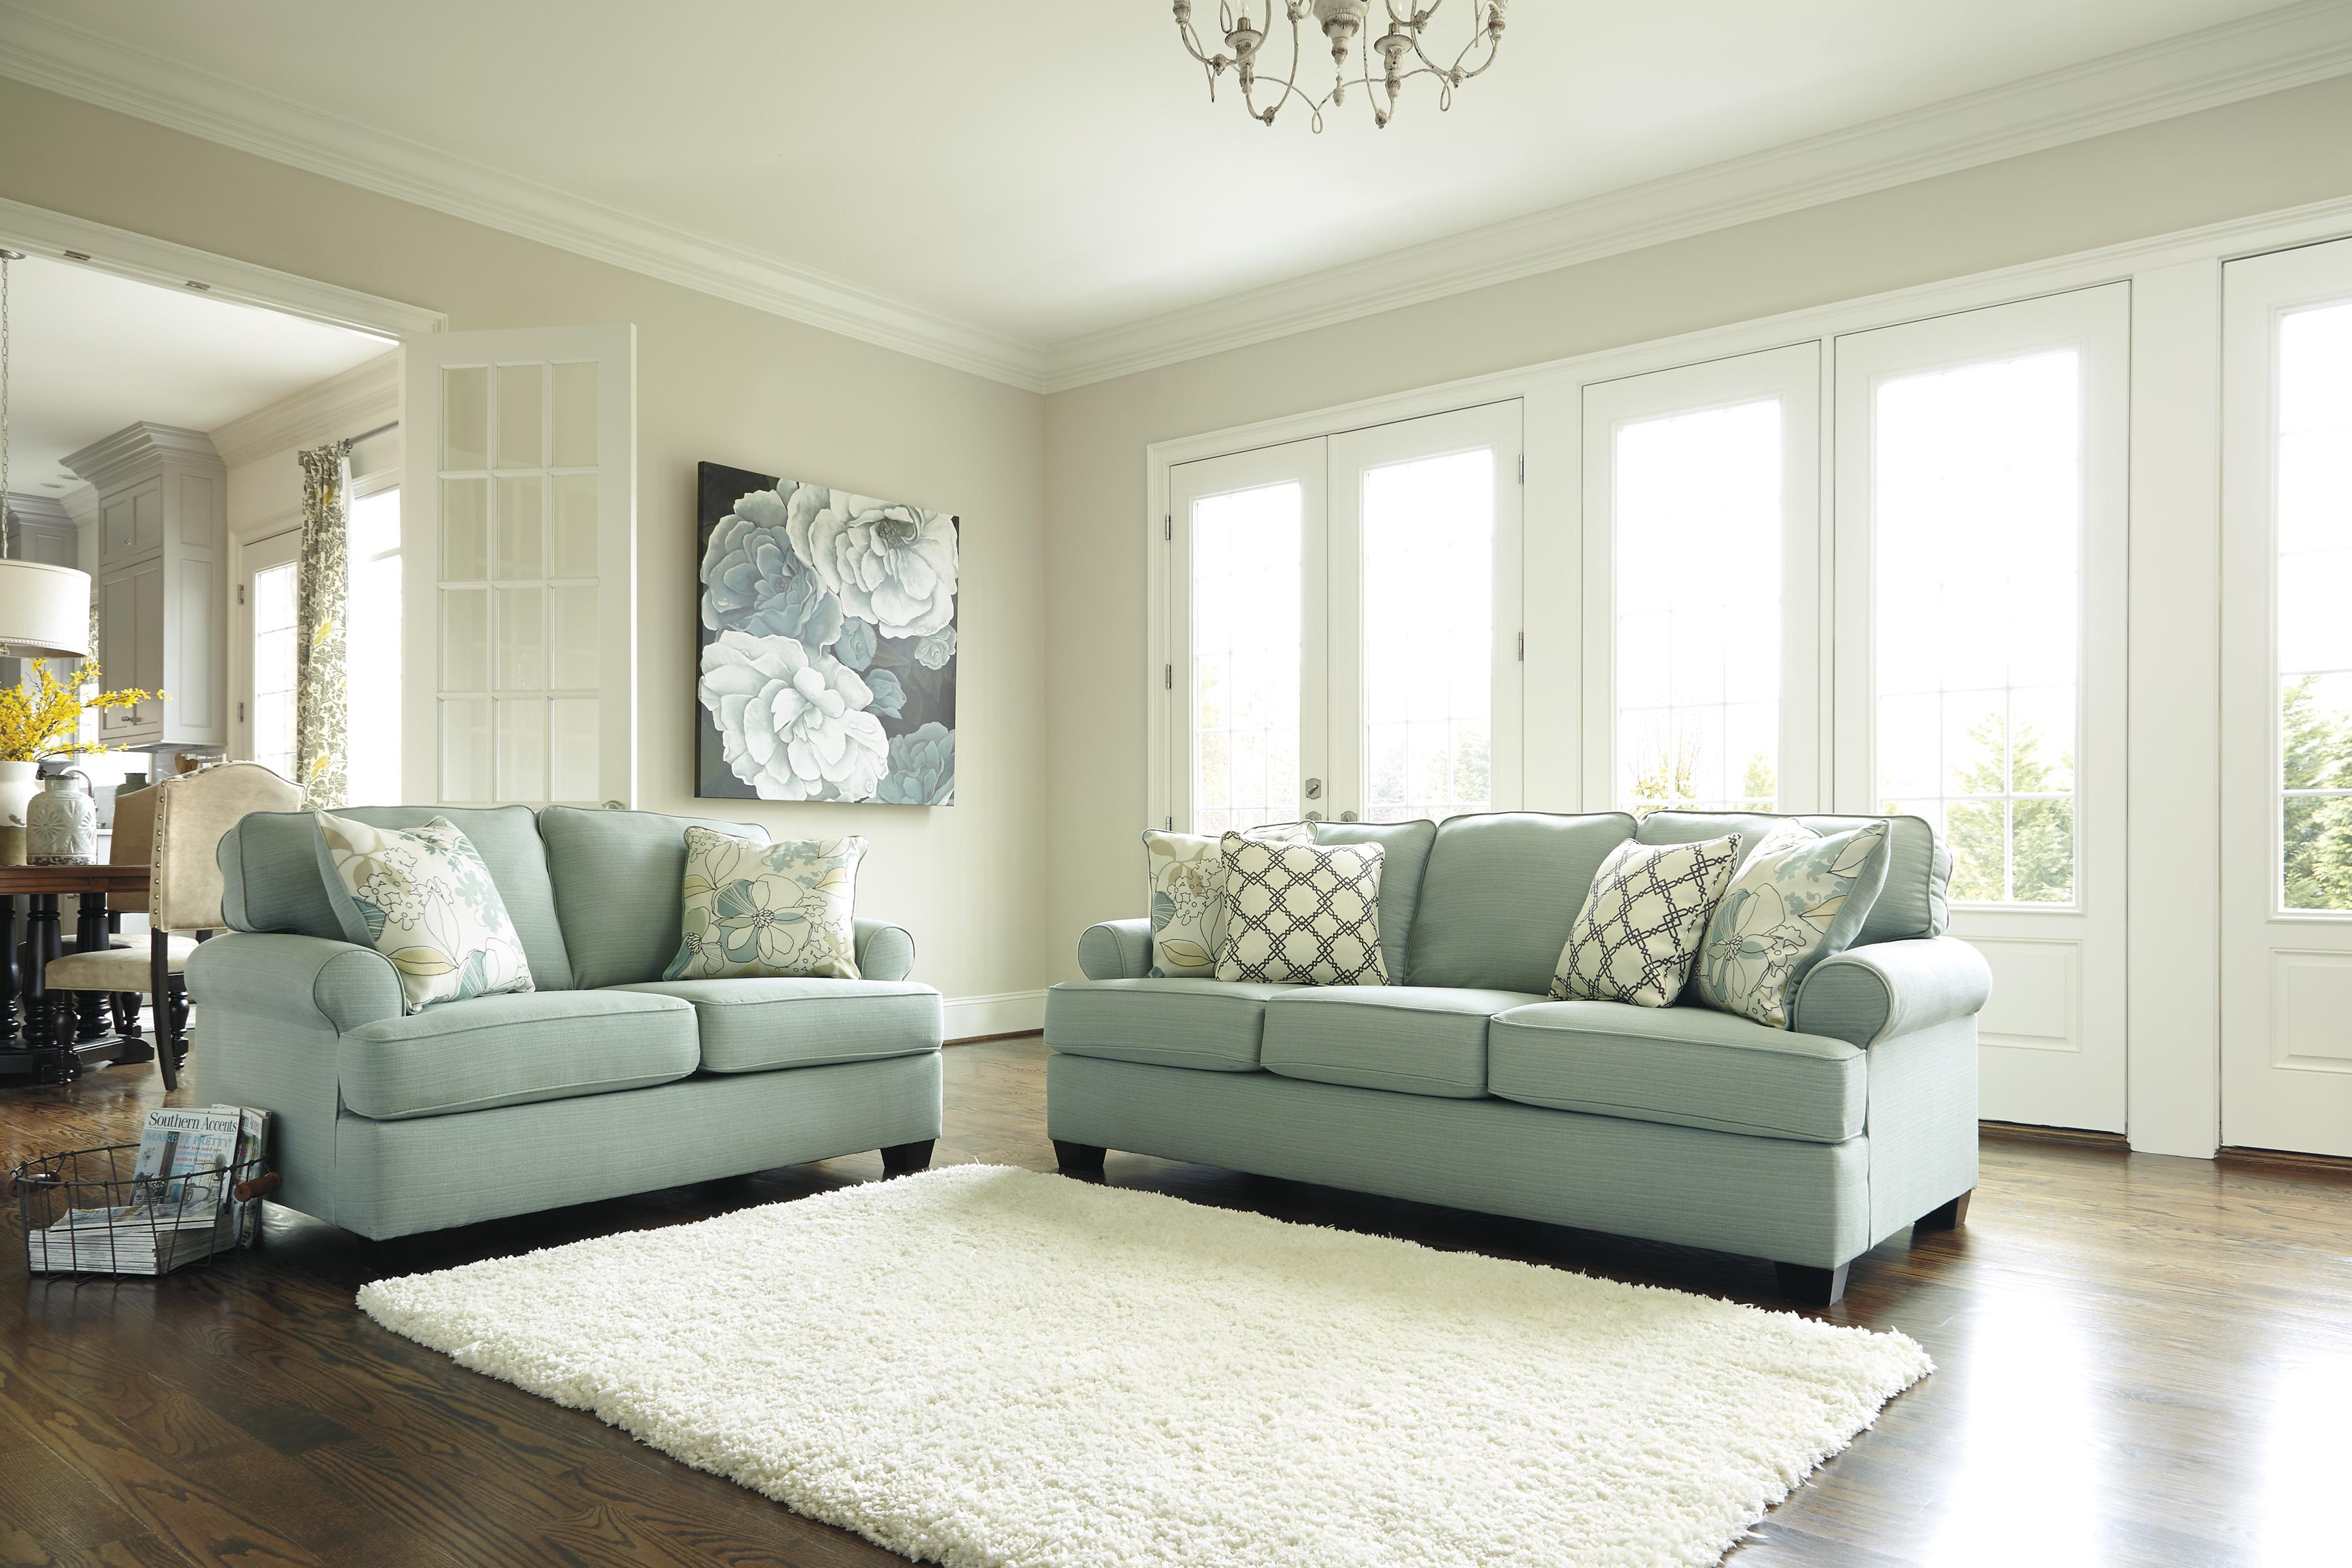 Signature Design by Ashley Daystar - Seafoam Stationary Living Room Group - Item Number: 28200 Living Room Group 1